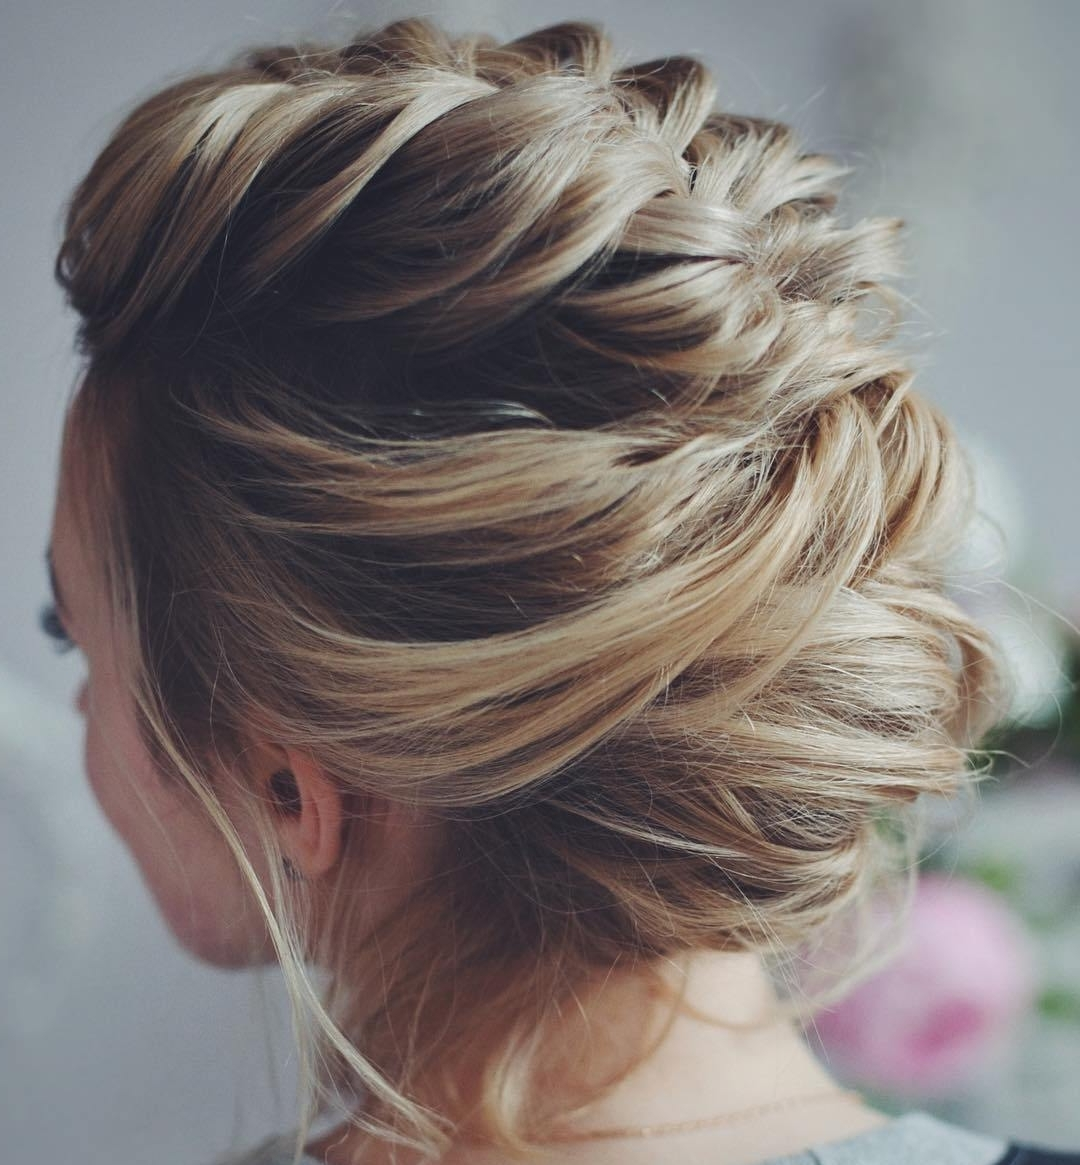 50 Hottest Prom Hairstyles For Short Hair Intended For Popular Intricate Updo Ponytail Hairstyles For Highlighted Hair (View 19 of 20)